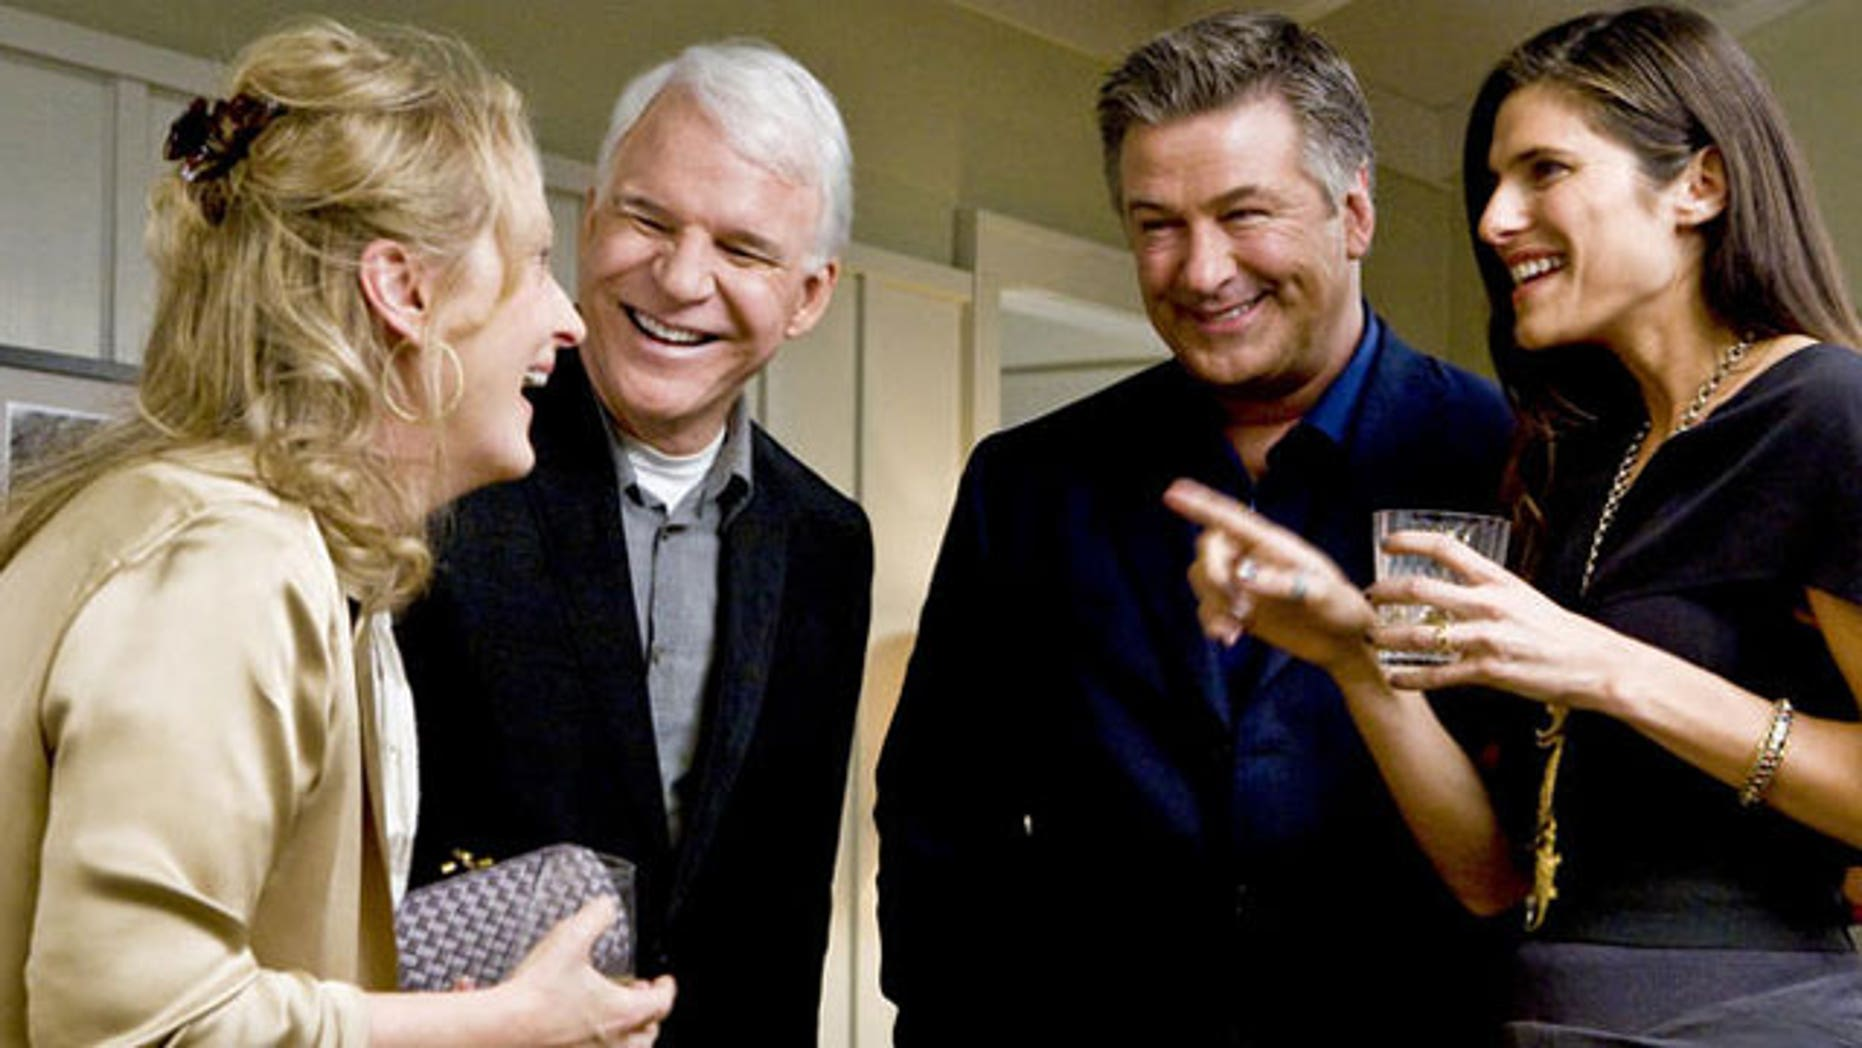 Steve Martin and Alec Baldwin are all smiles in this scene from 'It's Complicated,' but will the pairing work on March 7? (AP)